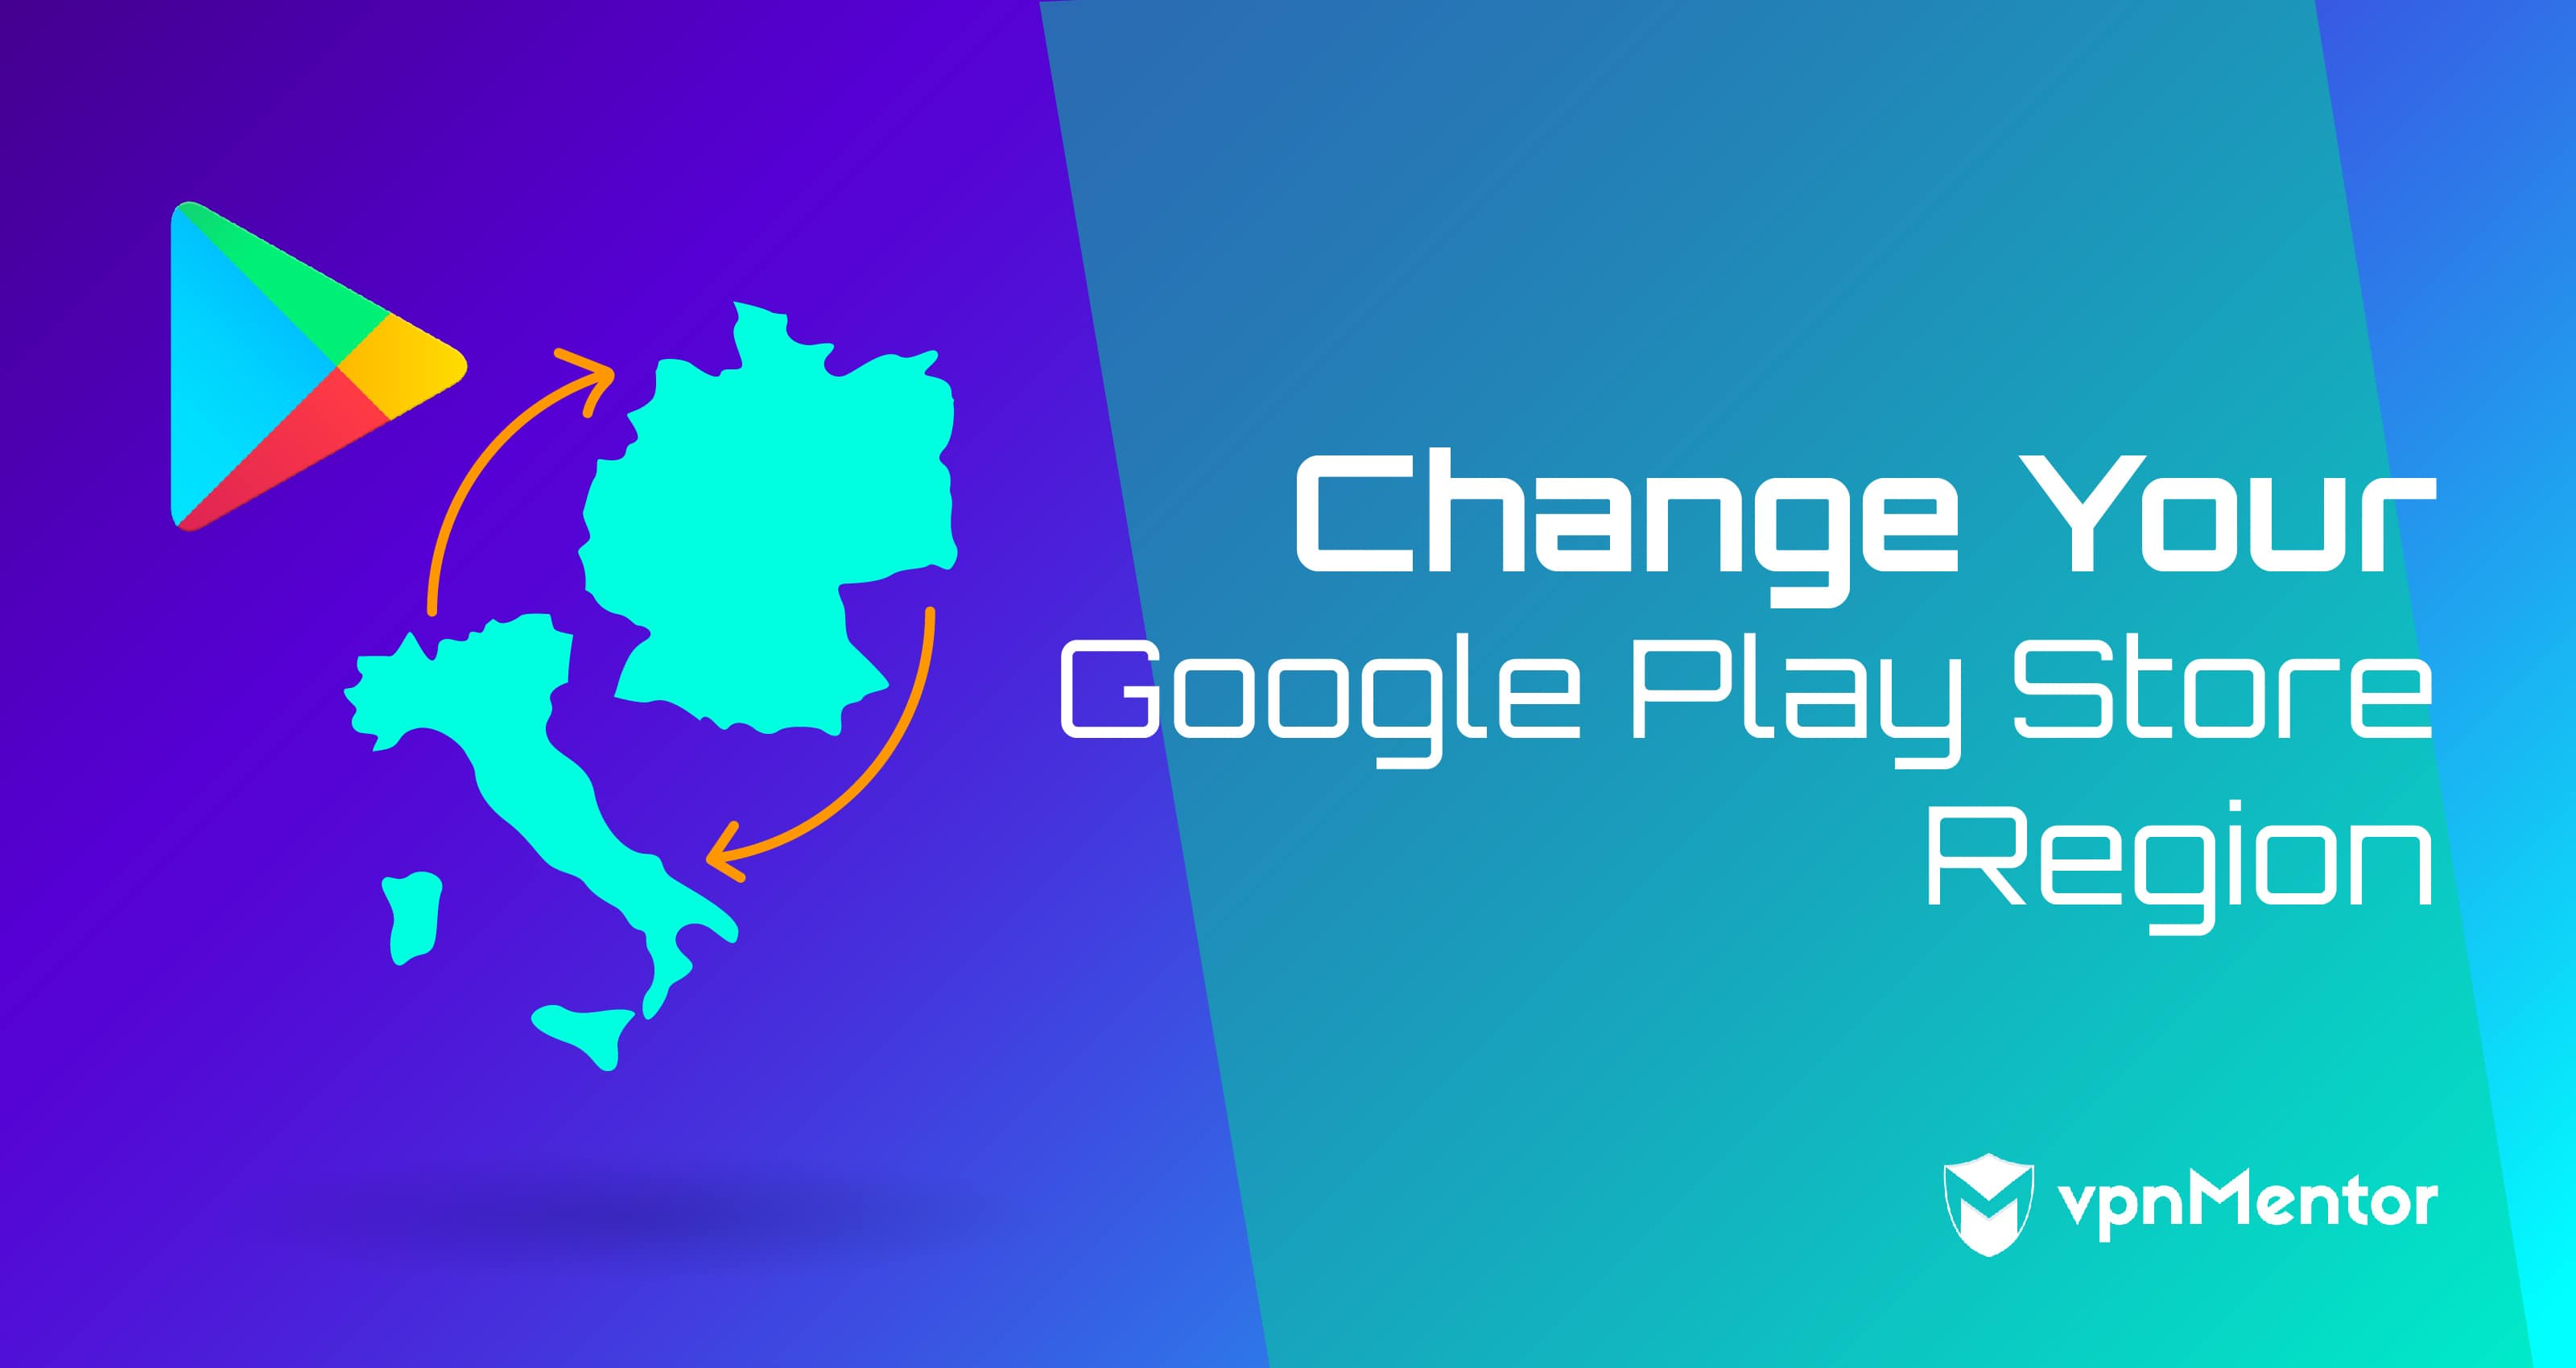 Change Your Google Play Store Region